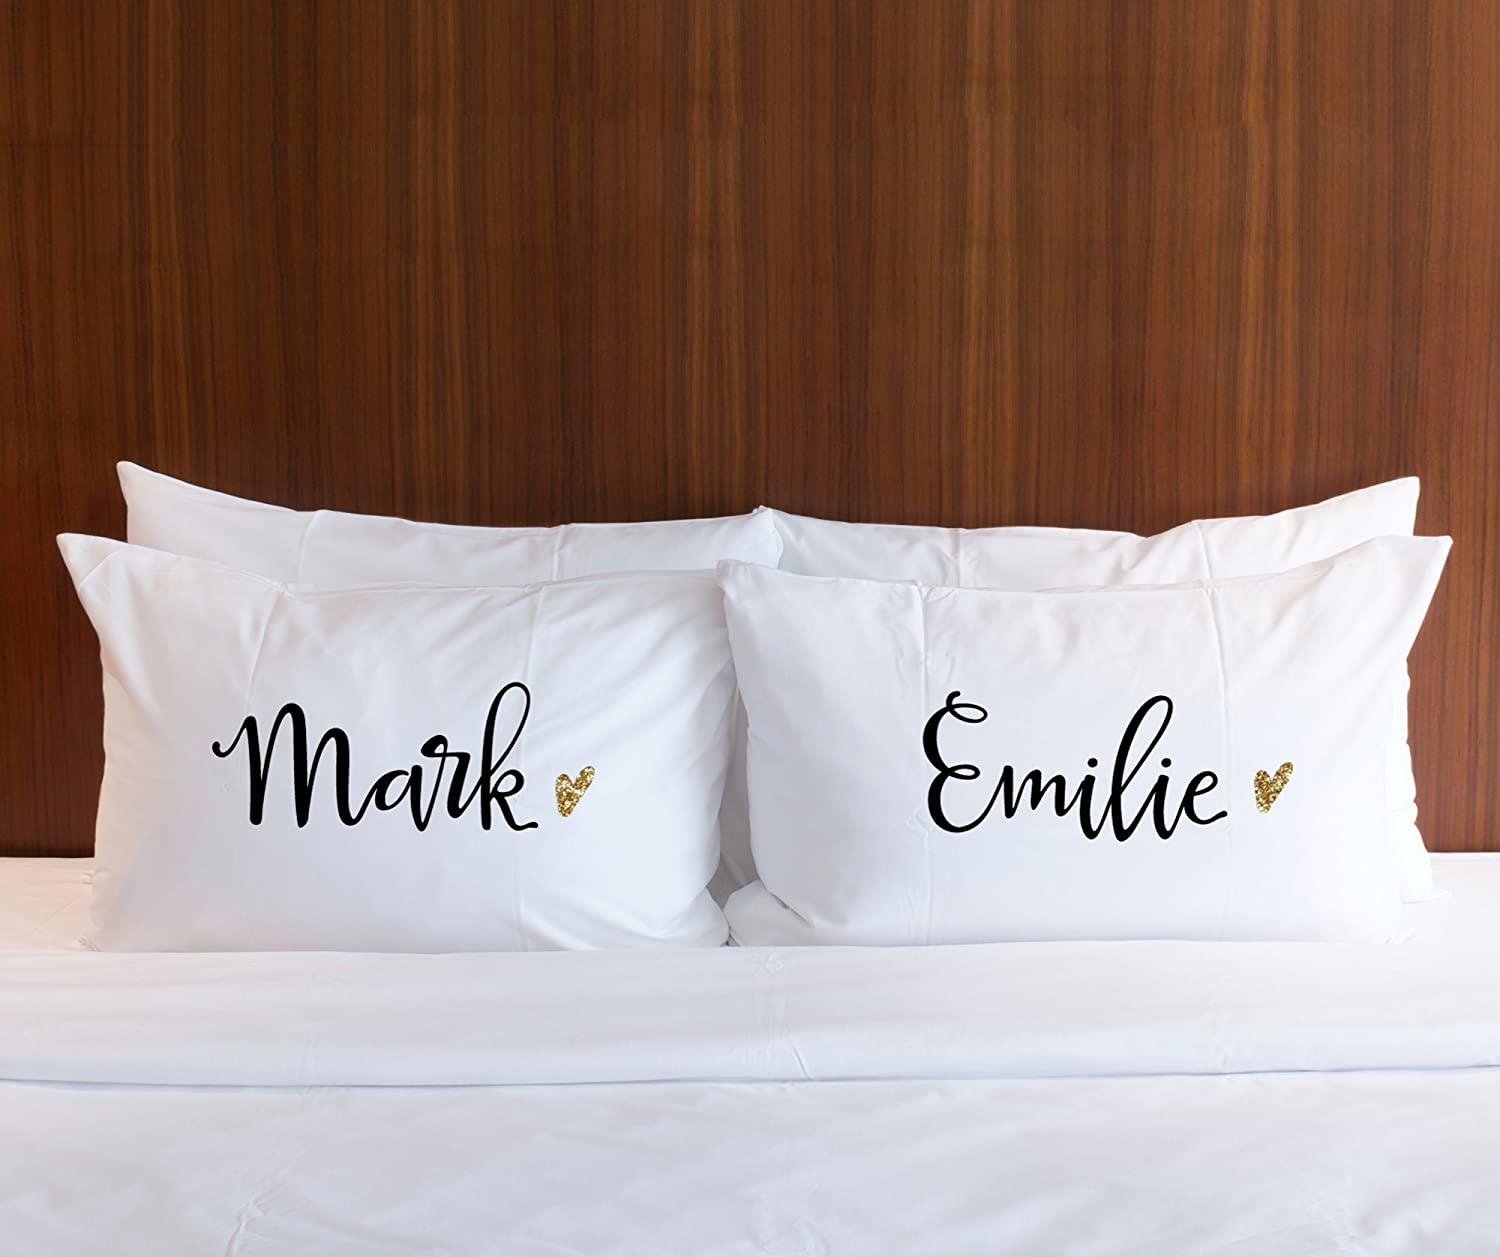 personalized name pillowcases gift for couples set of 2 wedding gift bridal shower - Christmas Gifts For Newlyweds